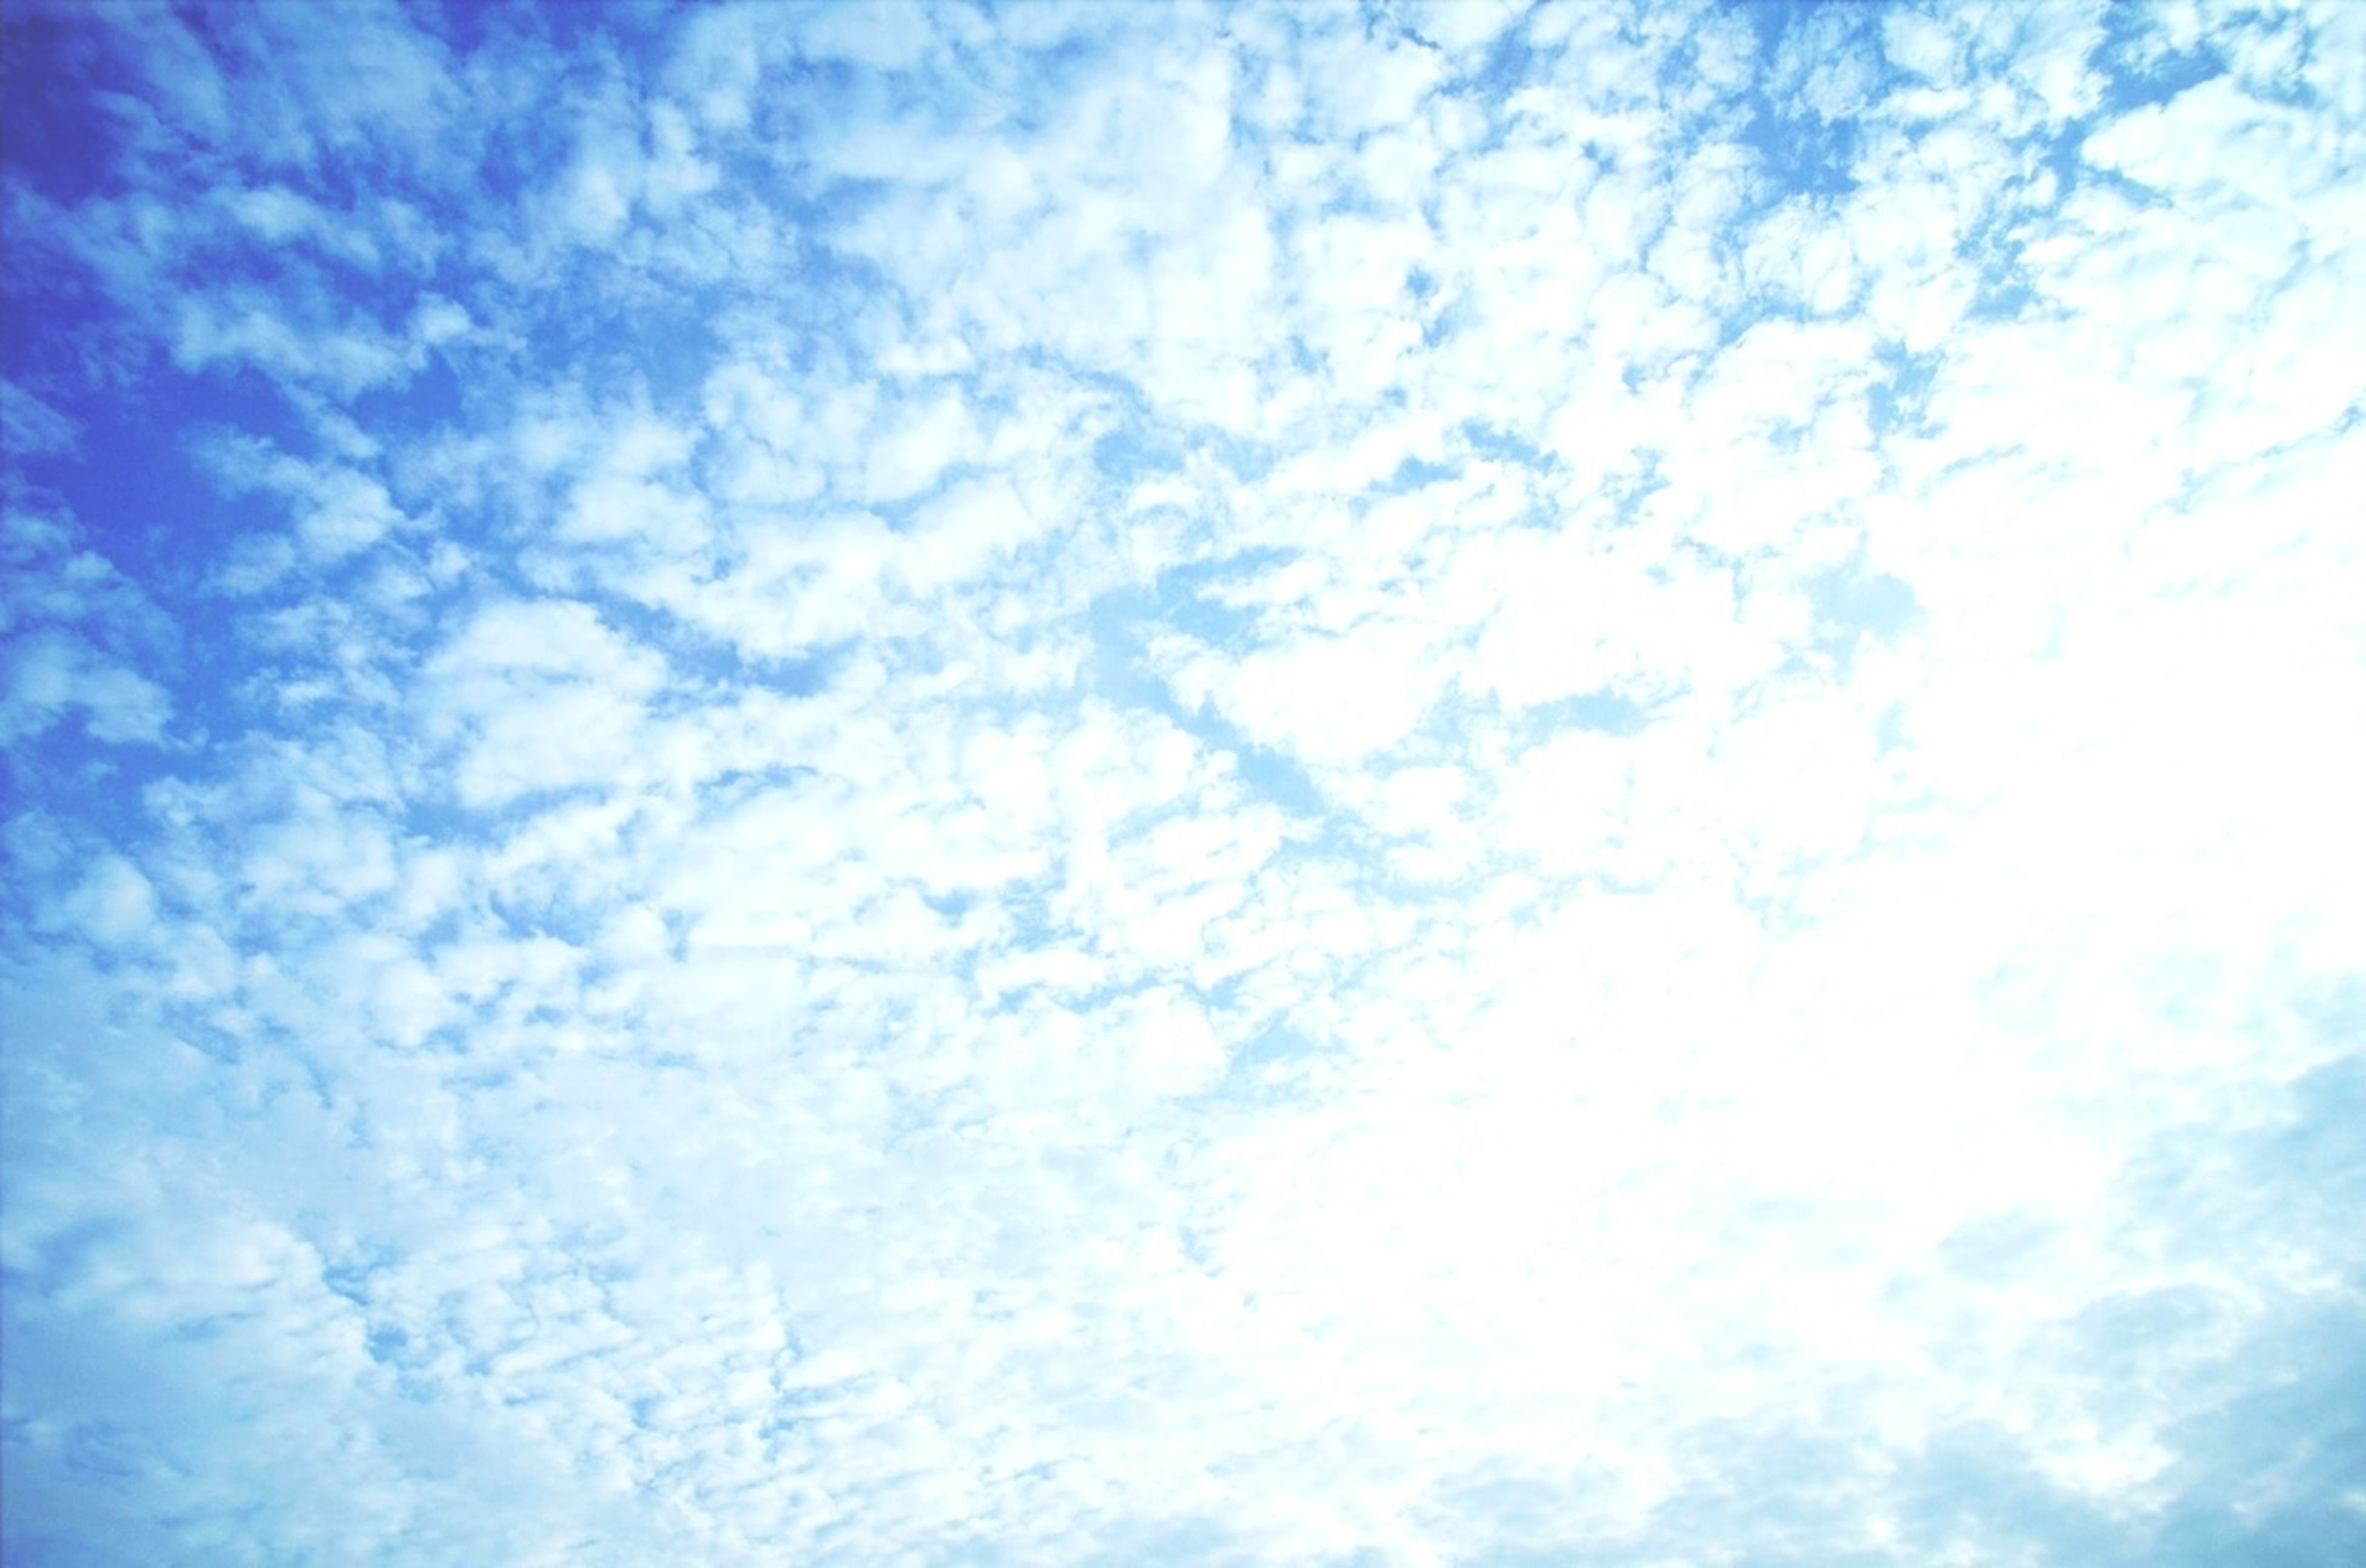 low angle view, sky, cloud - sky, blue, beauty in nature, backgrounds, tranquility, sky only, full frame, cloudy, nature, scenics, tranquil scene, cloud, cloudscape, white color, idyllic, outdoors, day, no people